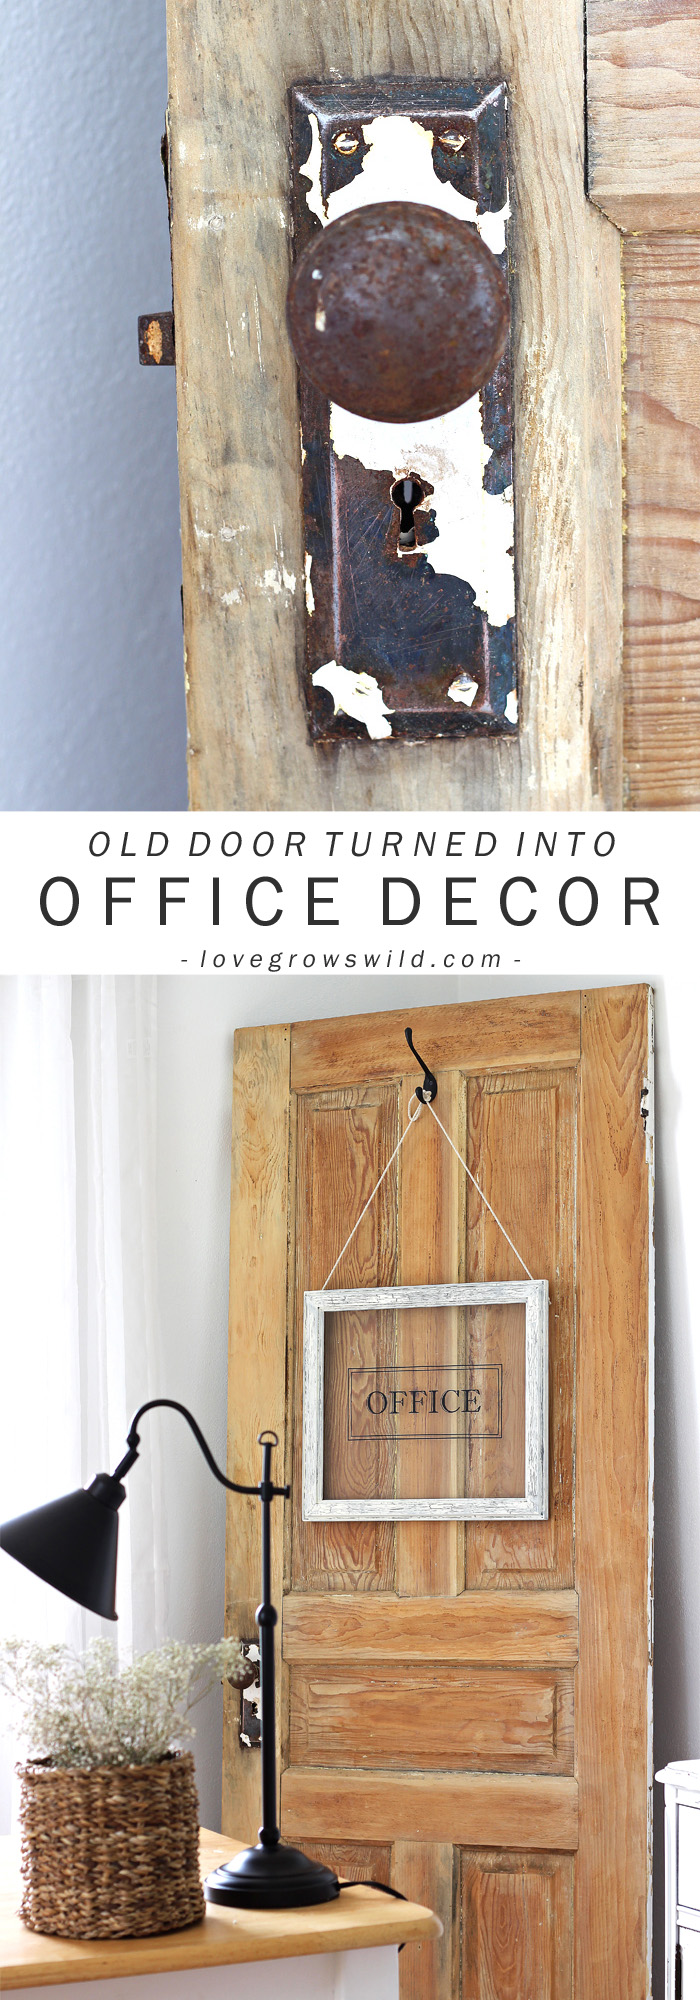 Old-Door-and-Office-Sign-final